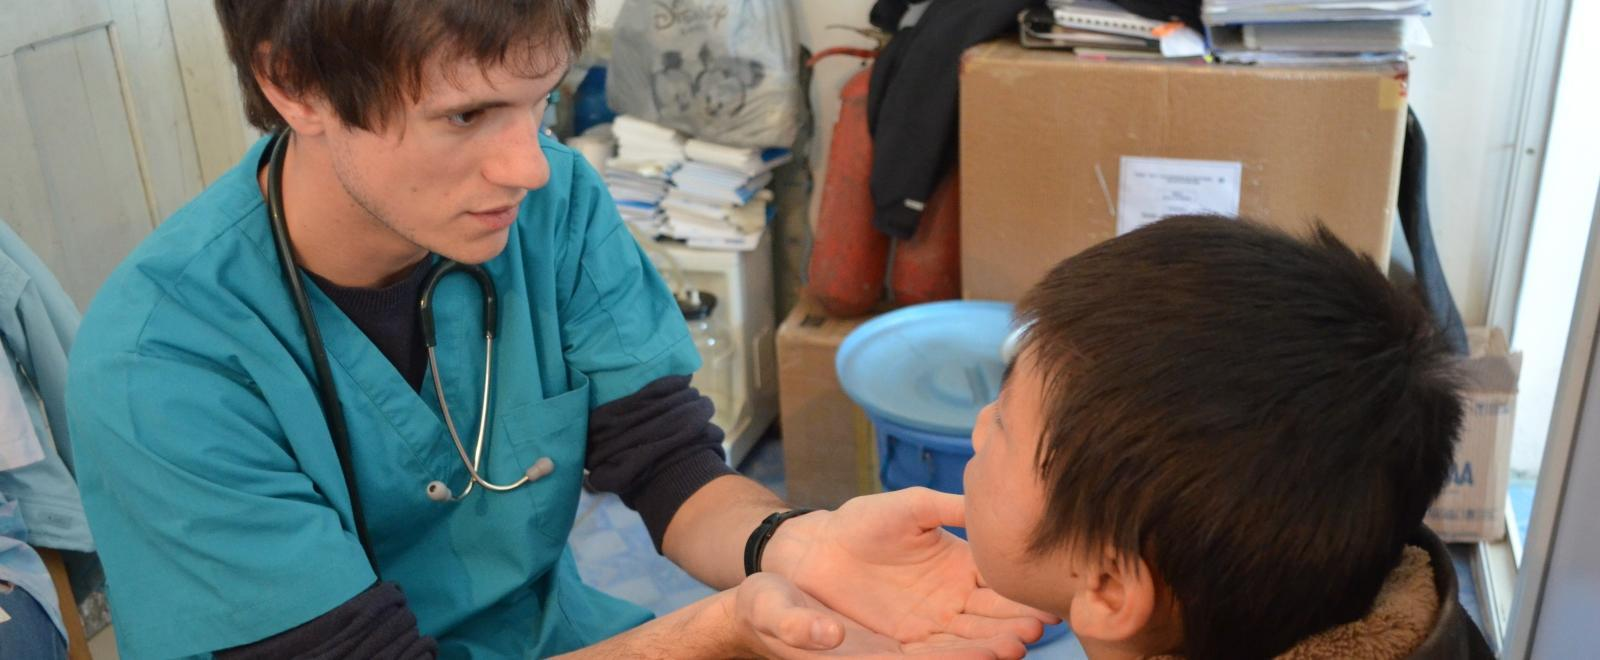 A Projects Abroad intern meets with a patient on our medical internship for teenagers in Mongolia